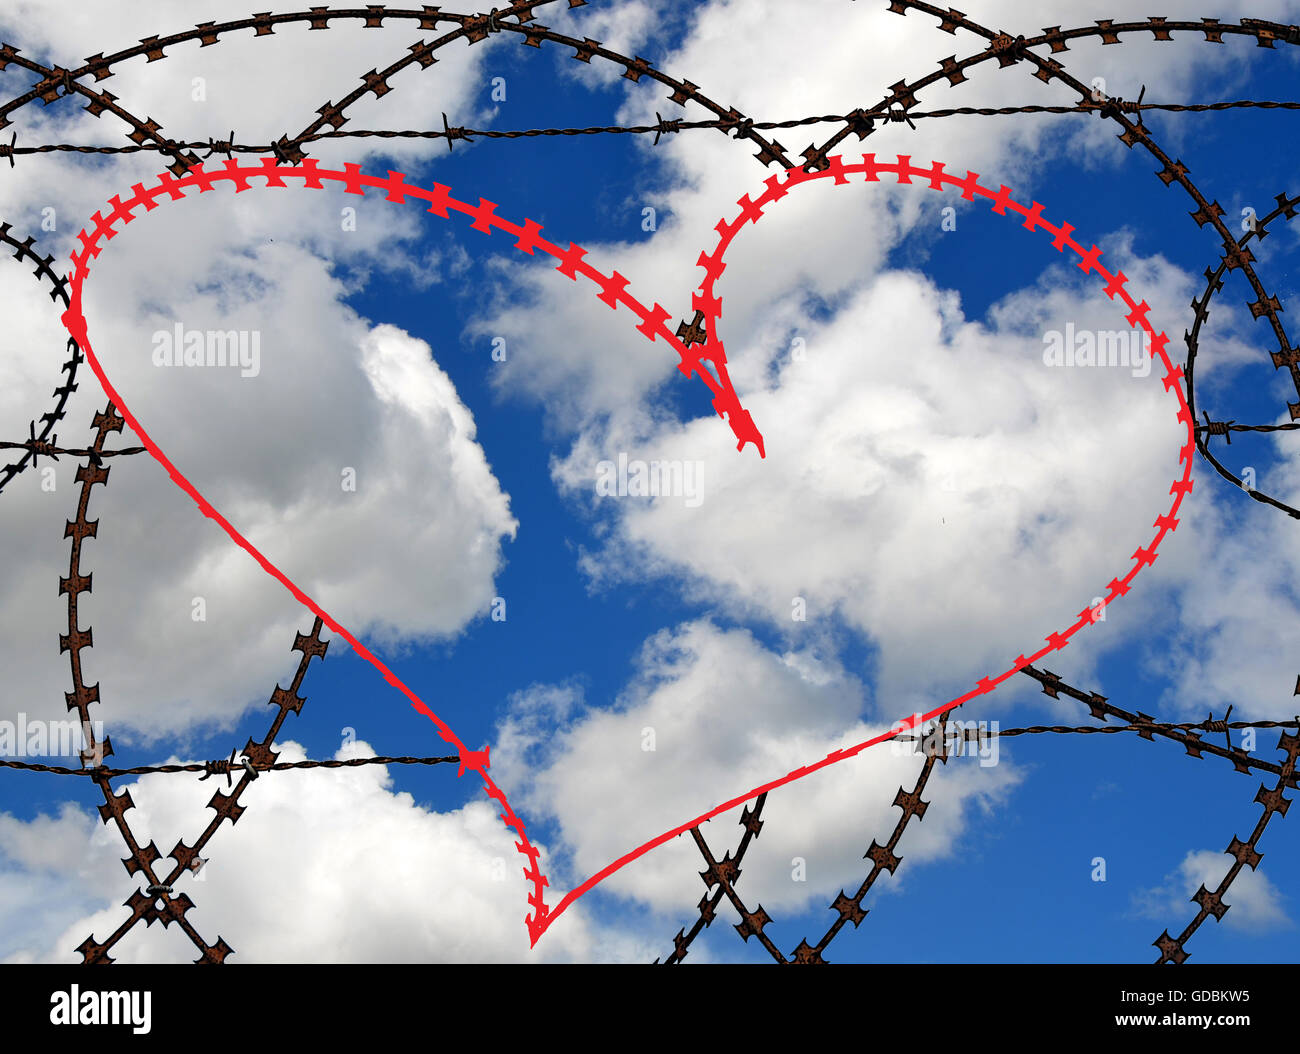 Natural heart shape (digitally coloured red) in a barbed wire fence on sky background. Love, freedom, peace, hope - Stock Image